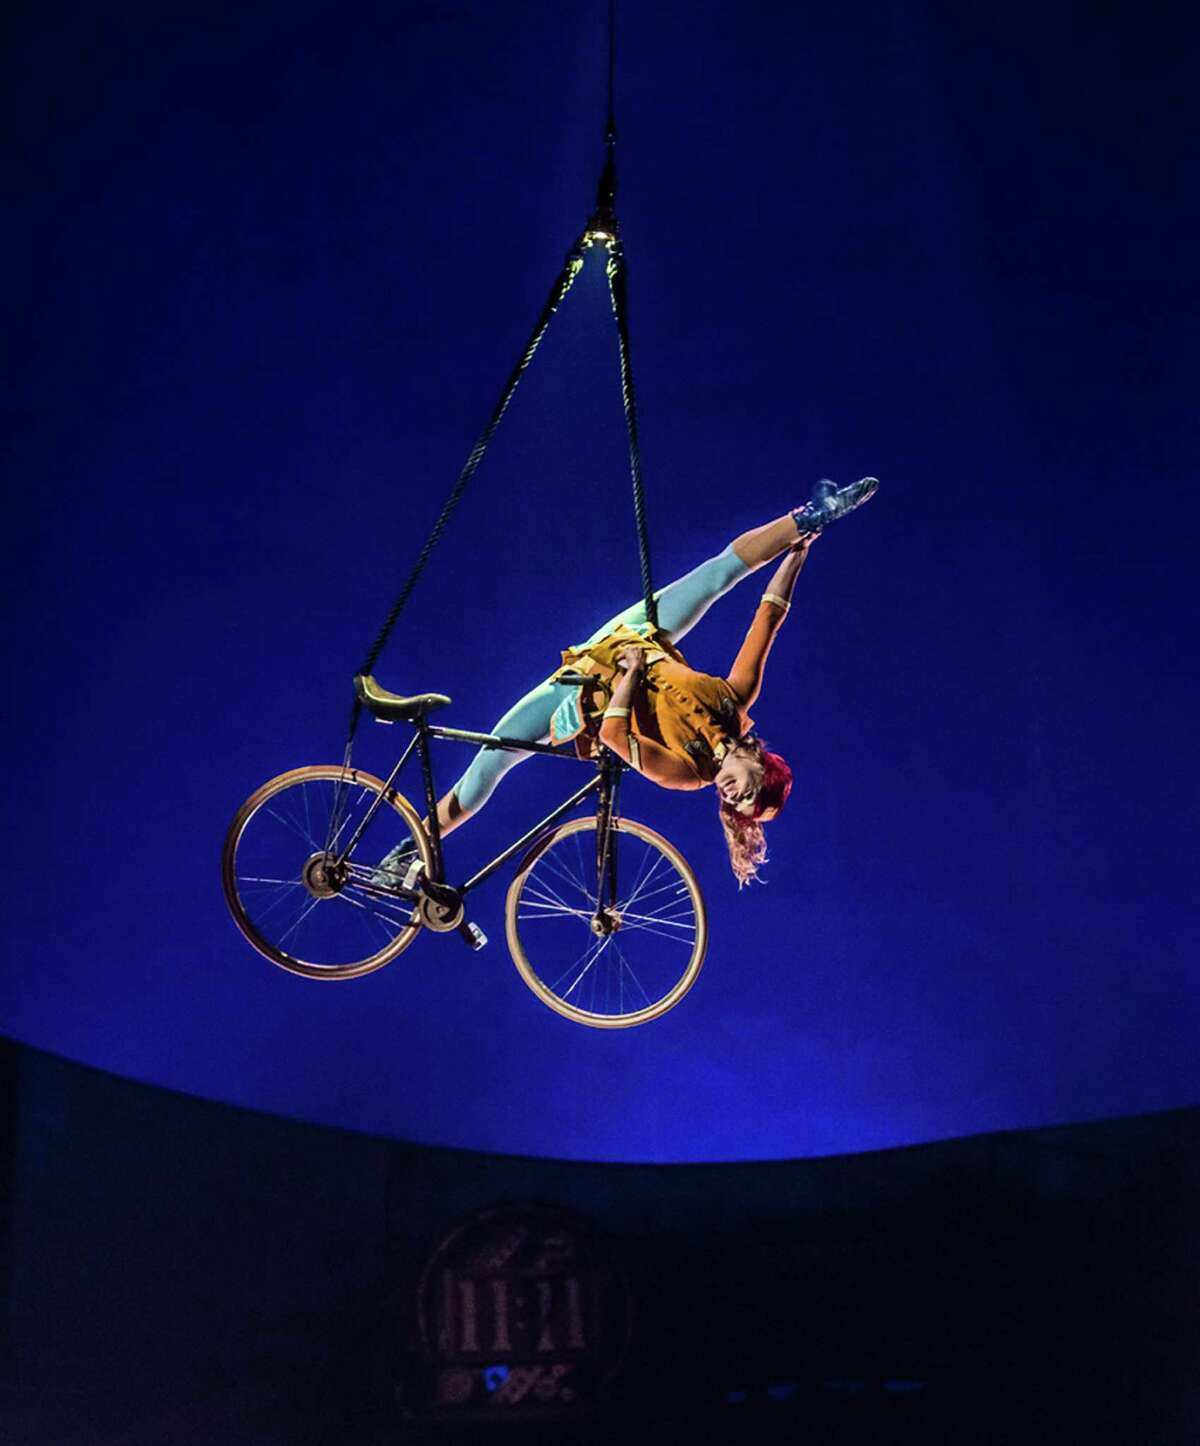 Anne Weissbecker performs suspended in the aerial bicycle act in Cirque du Soleil's